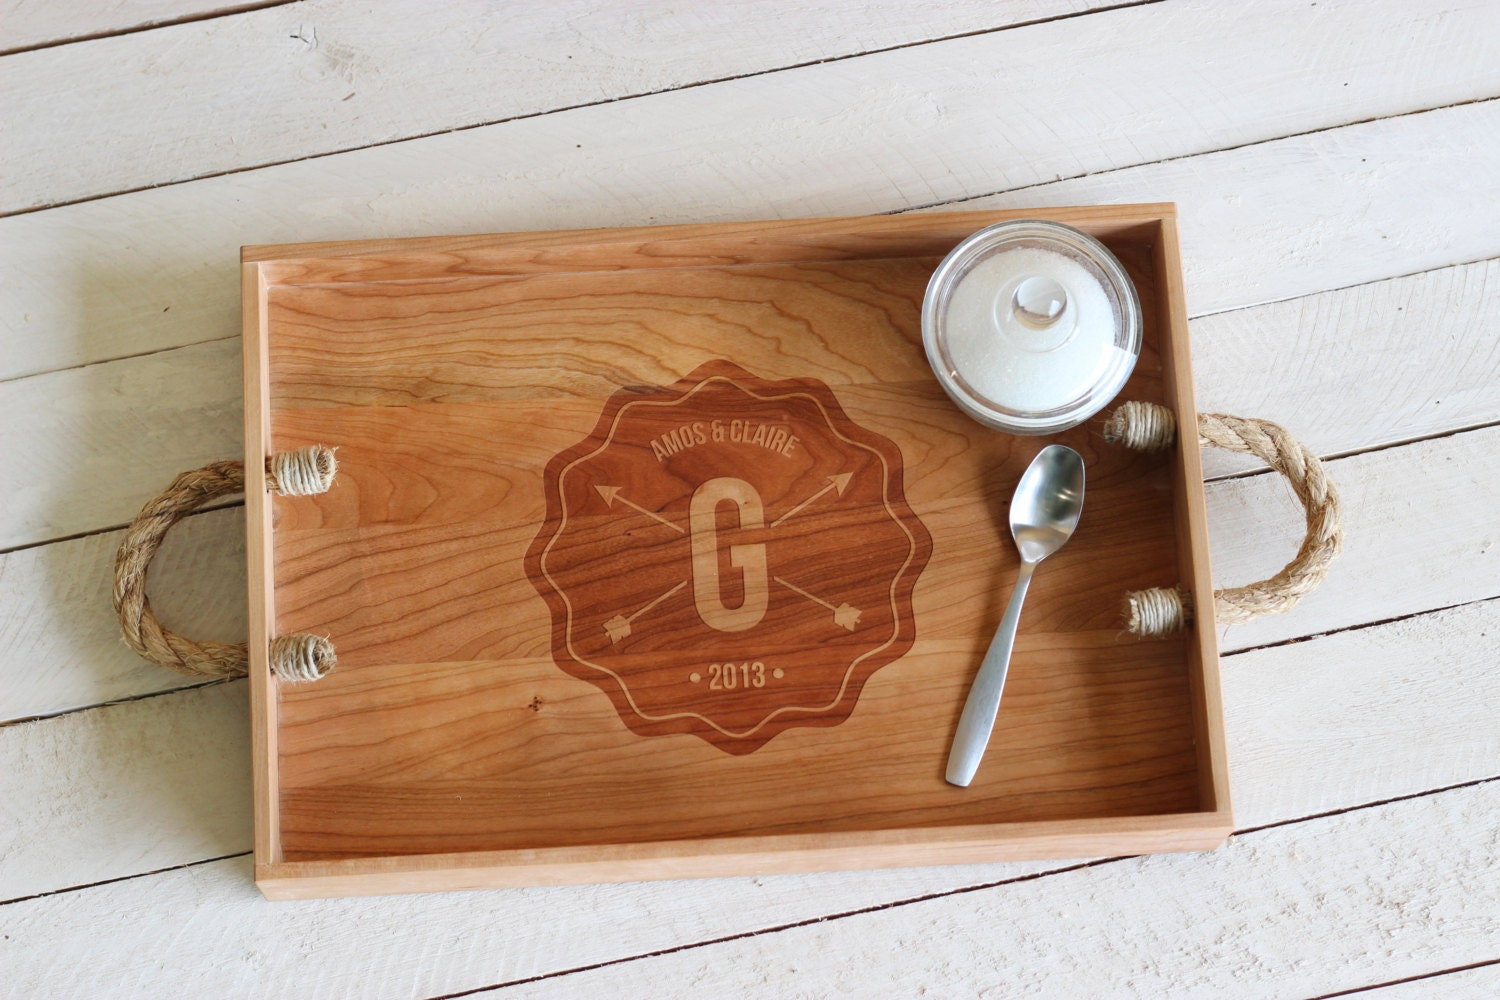 Richwood Creations Engraved Kitchen Tray Gift Idea